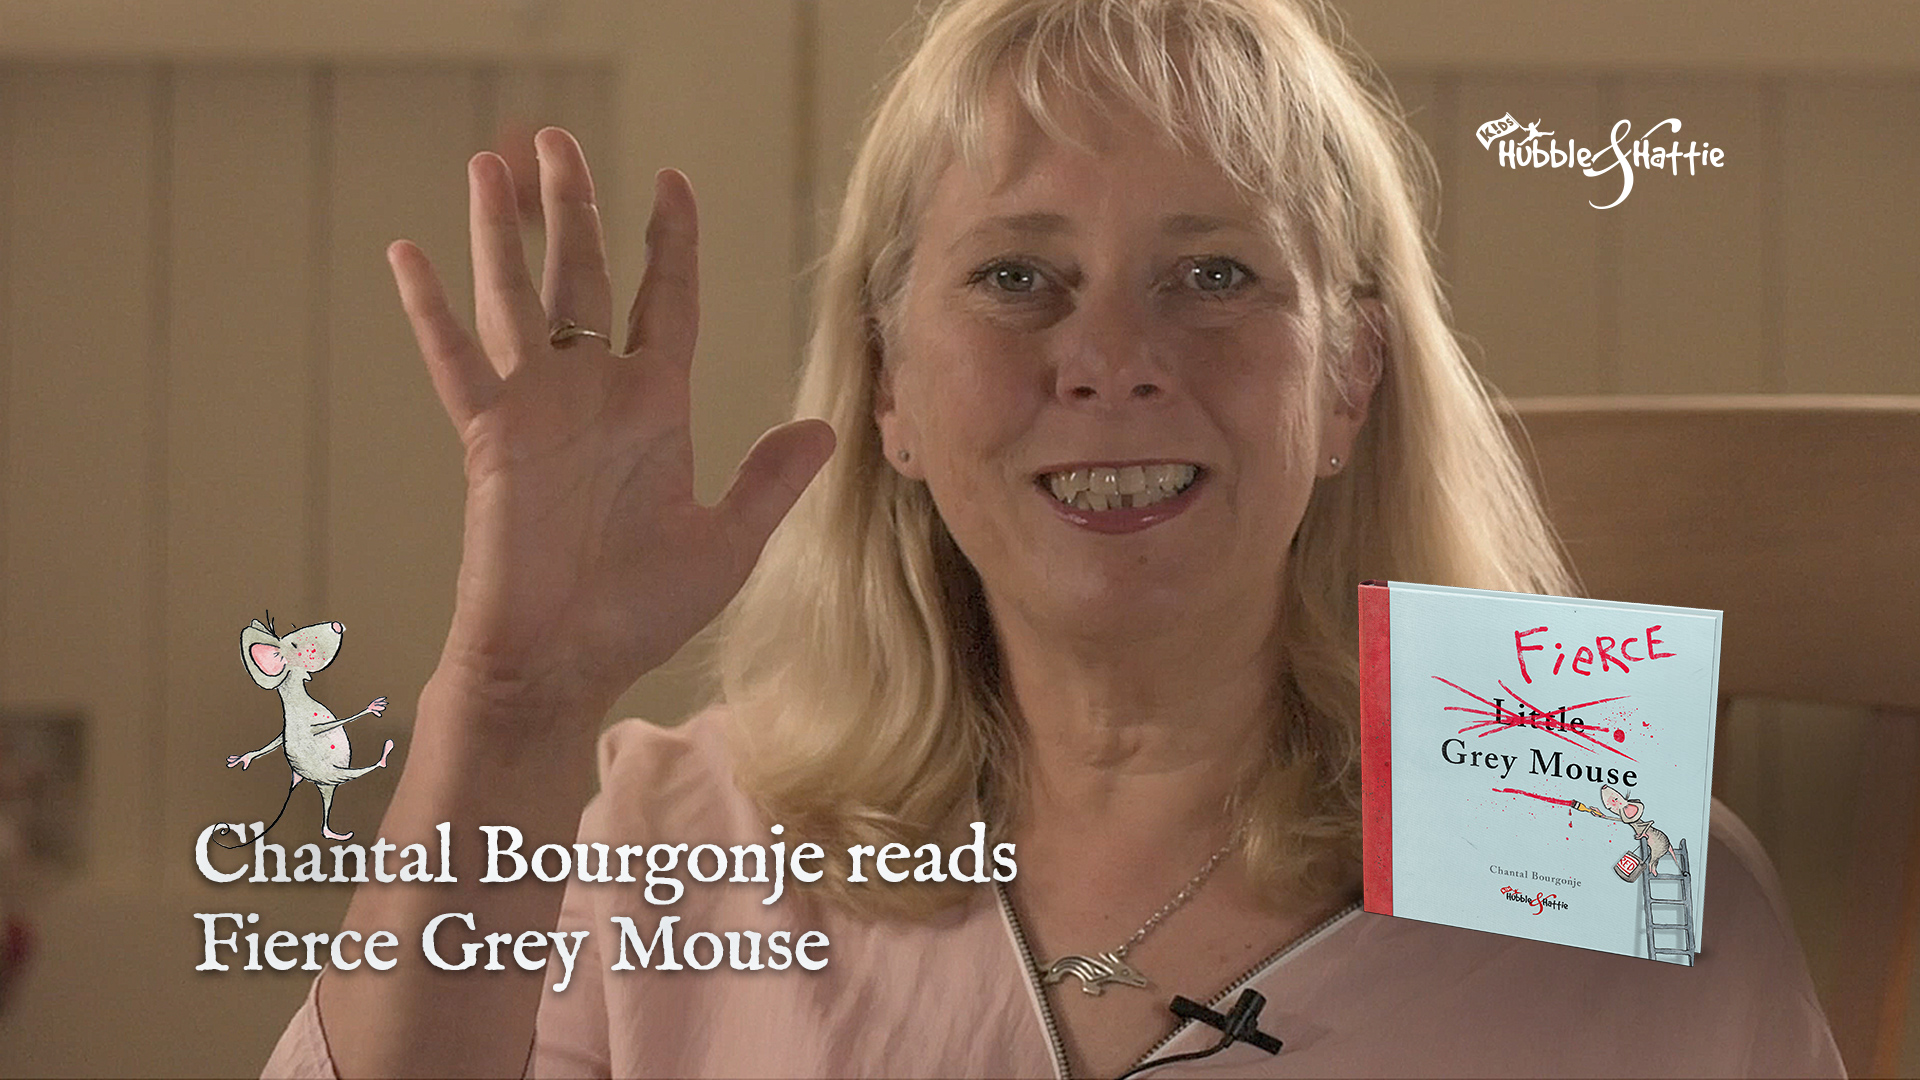 Listen to Chantal Bourgonje read Fierce Grey Mouse